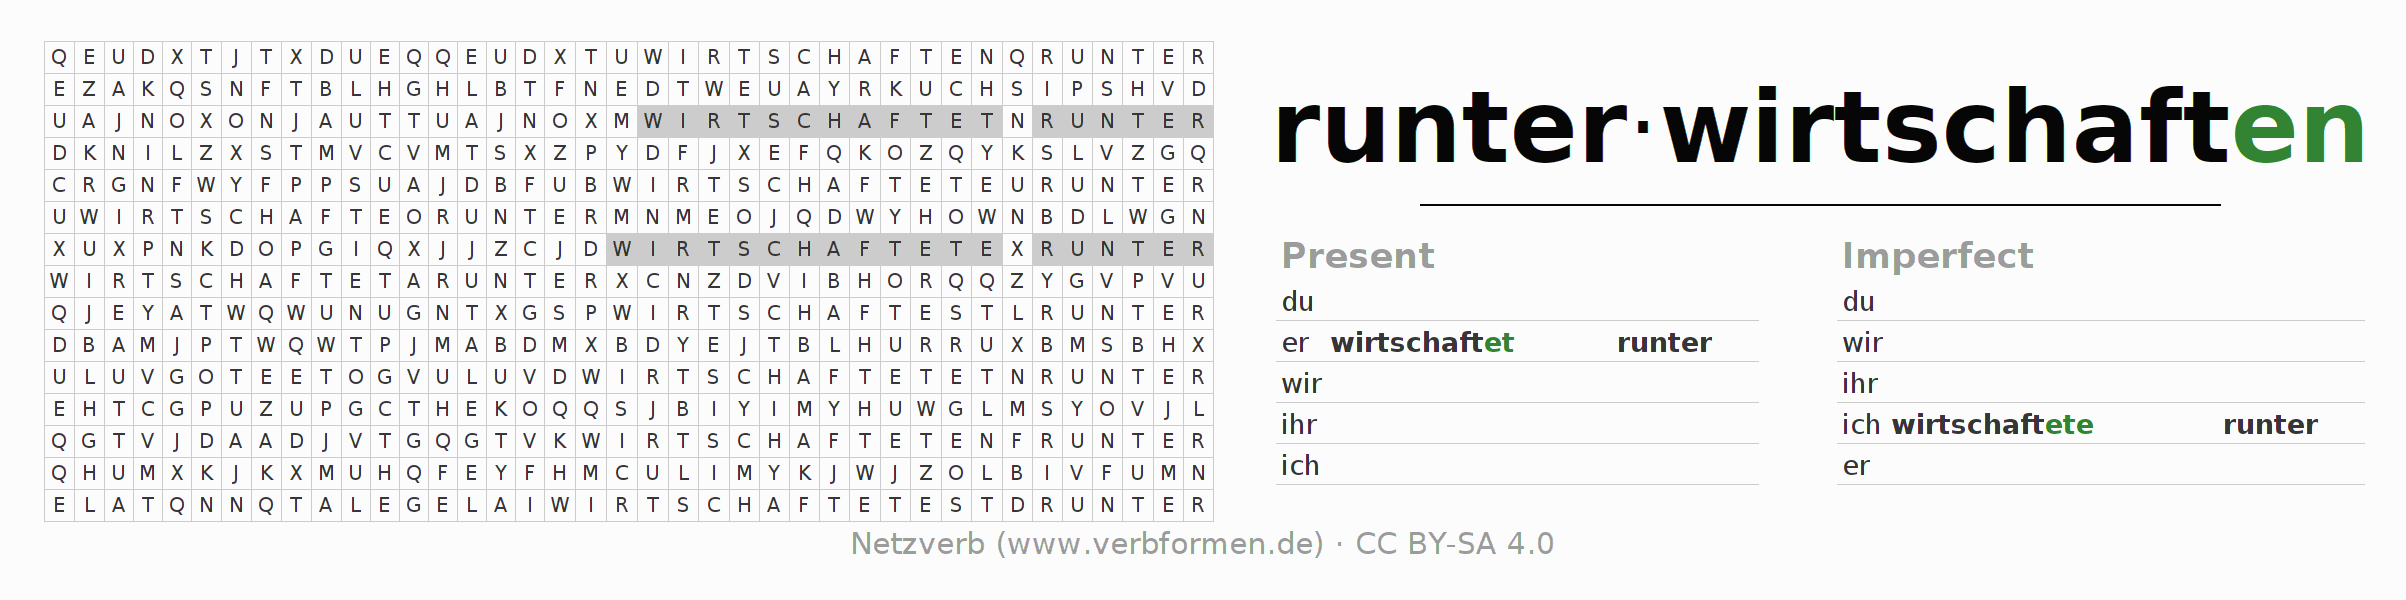 Word search puzzle for the conjugation of the verb runterwirtschaften